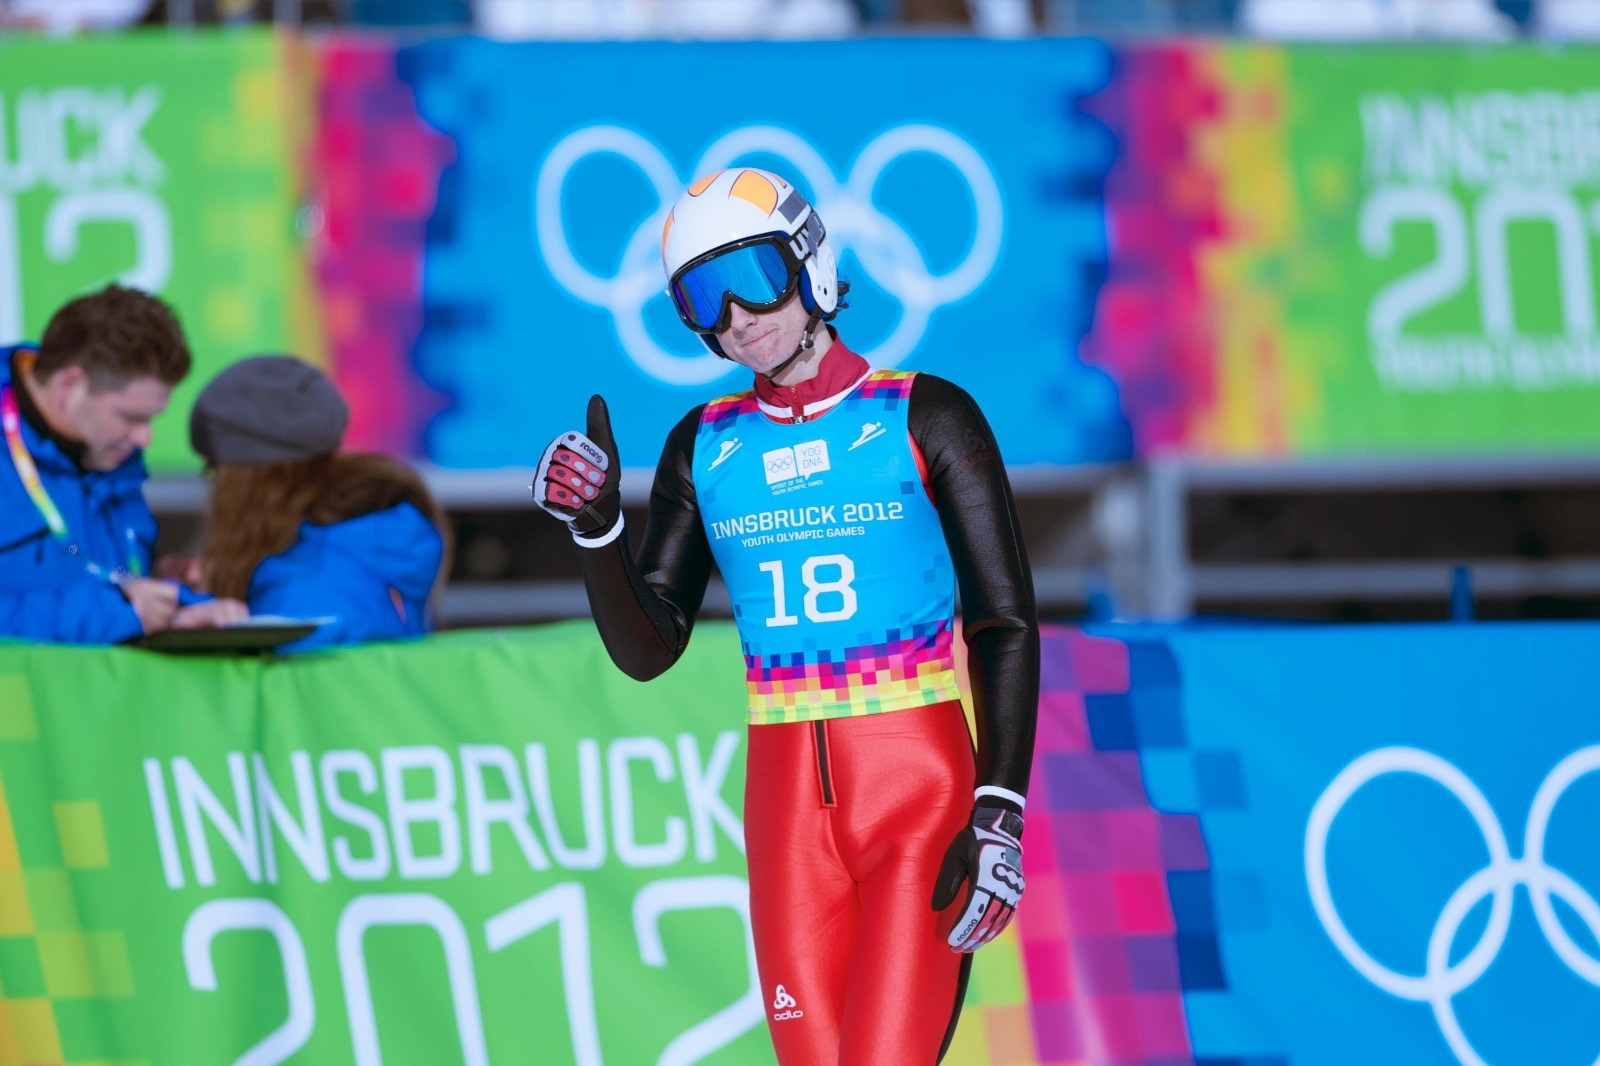 Killian Peier competed at the 2012 Winter Youth Olympics in Innsbruck ©Lausanne 2020